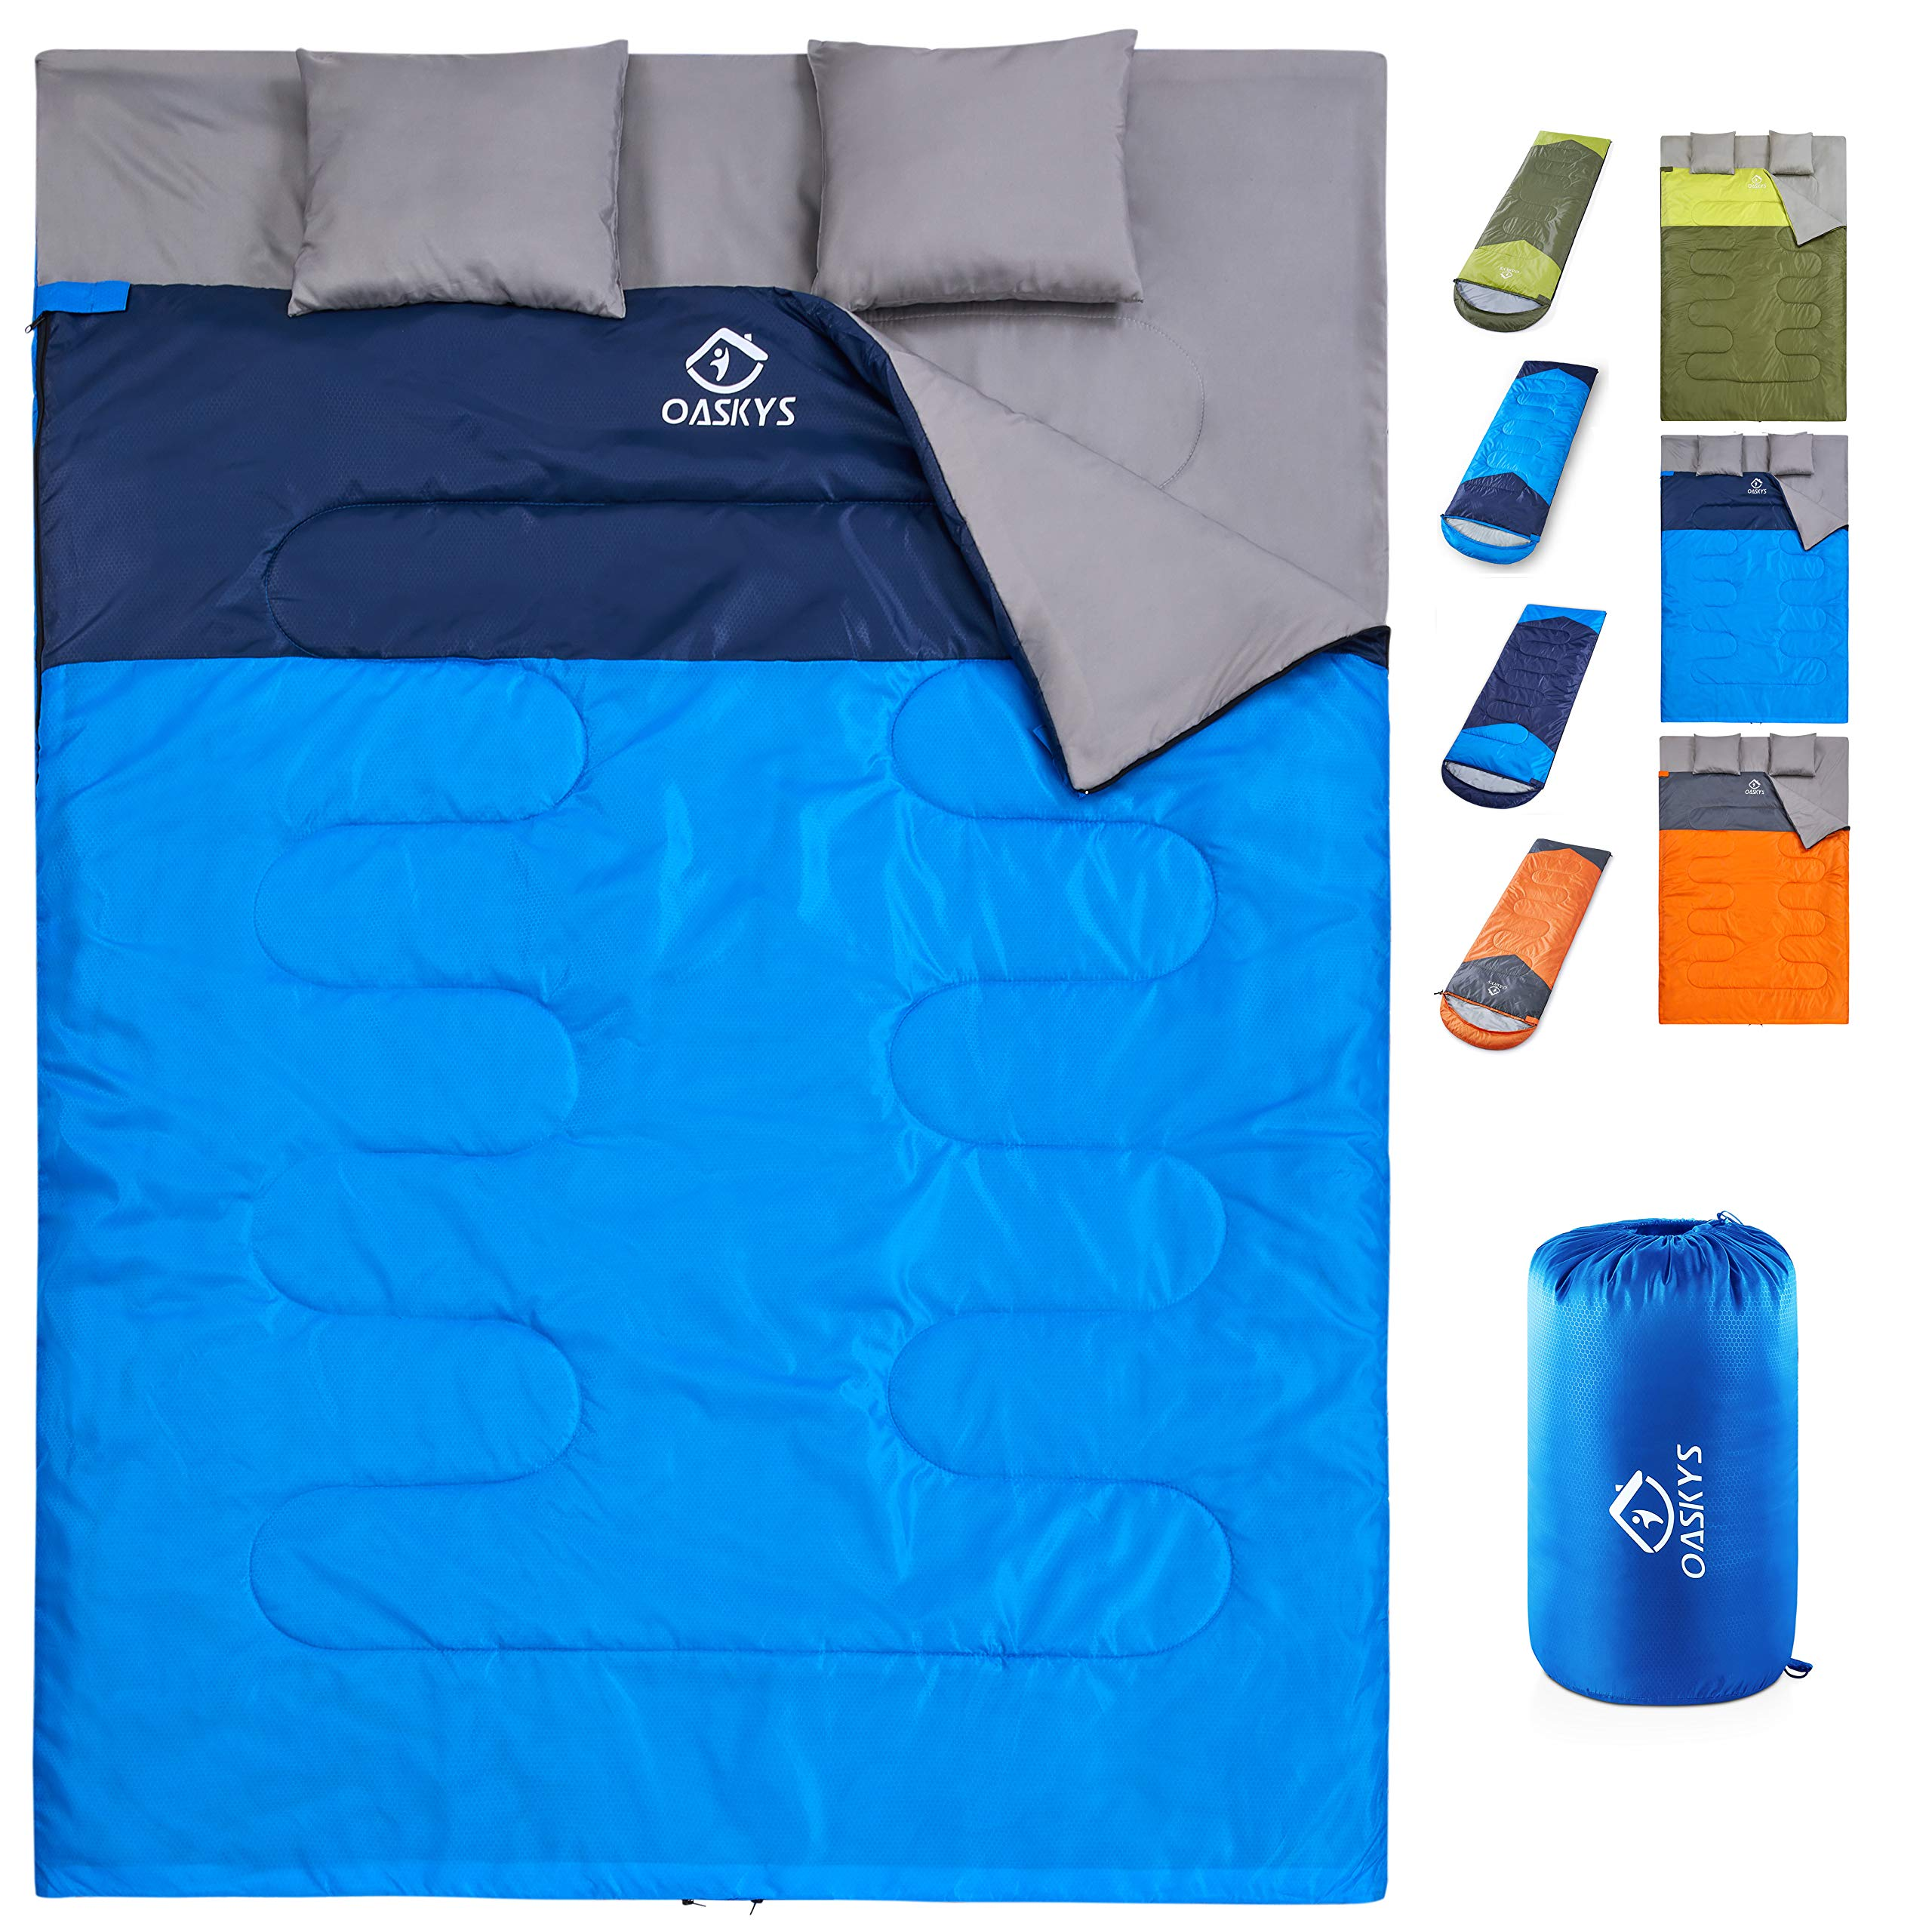 oaskys Camping Sleeping Bag - 3 Season Warm & Cool Weather - Summer, Spring, Fall, Lightweight, Waterproof for Adults & Kids - Camping Gear Equipment, Traveling, and Outdoors (Double Blue) by oaskys